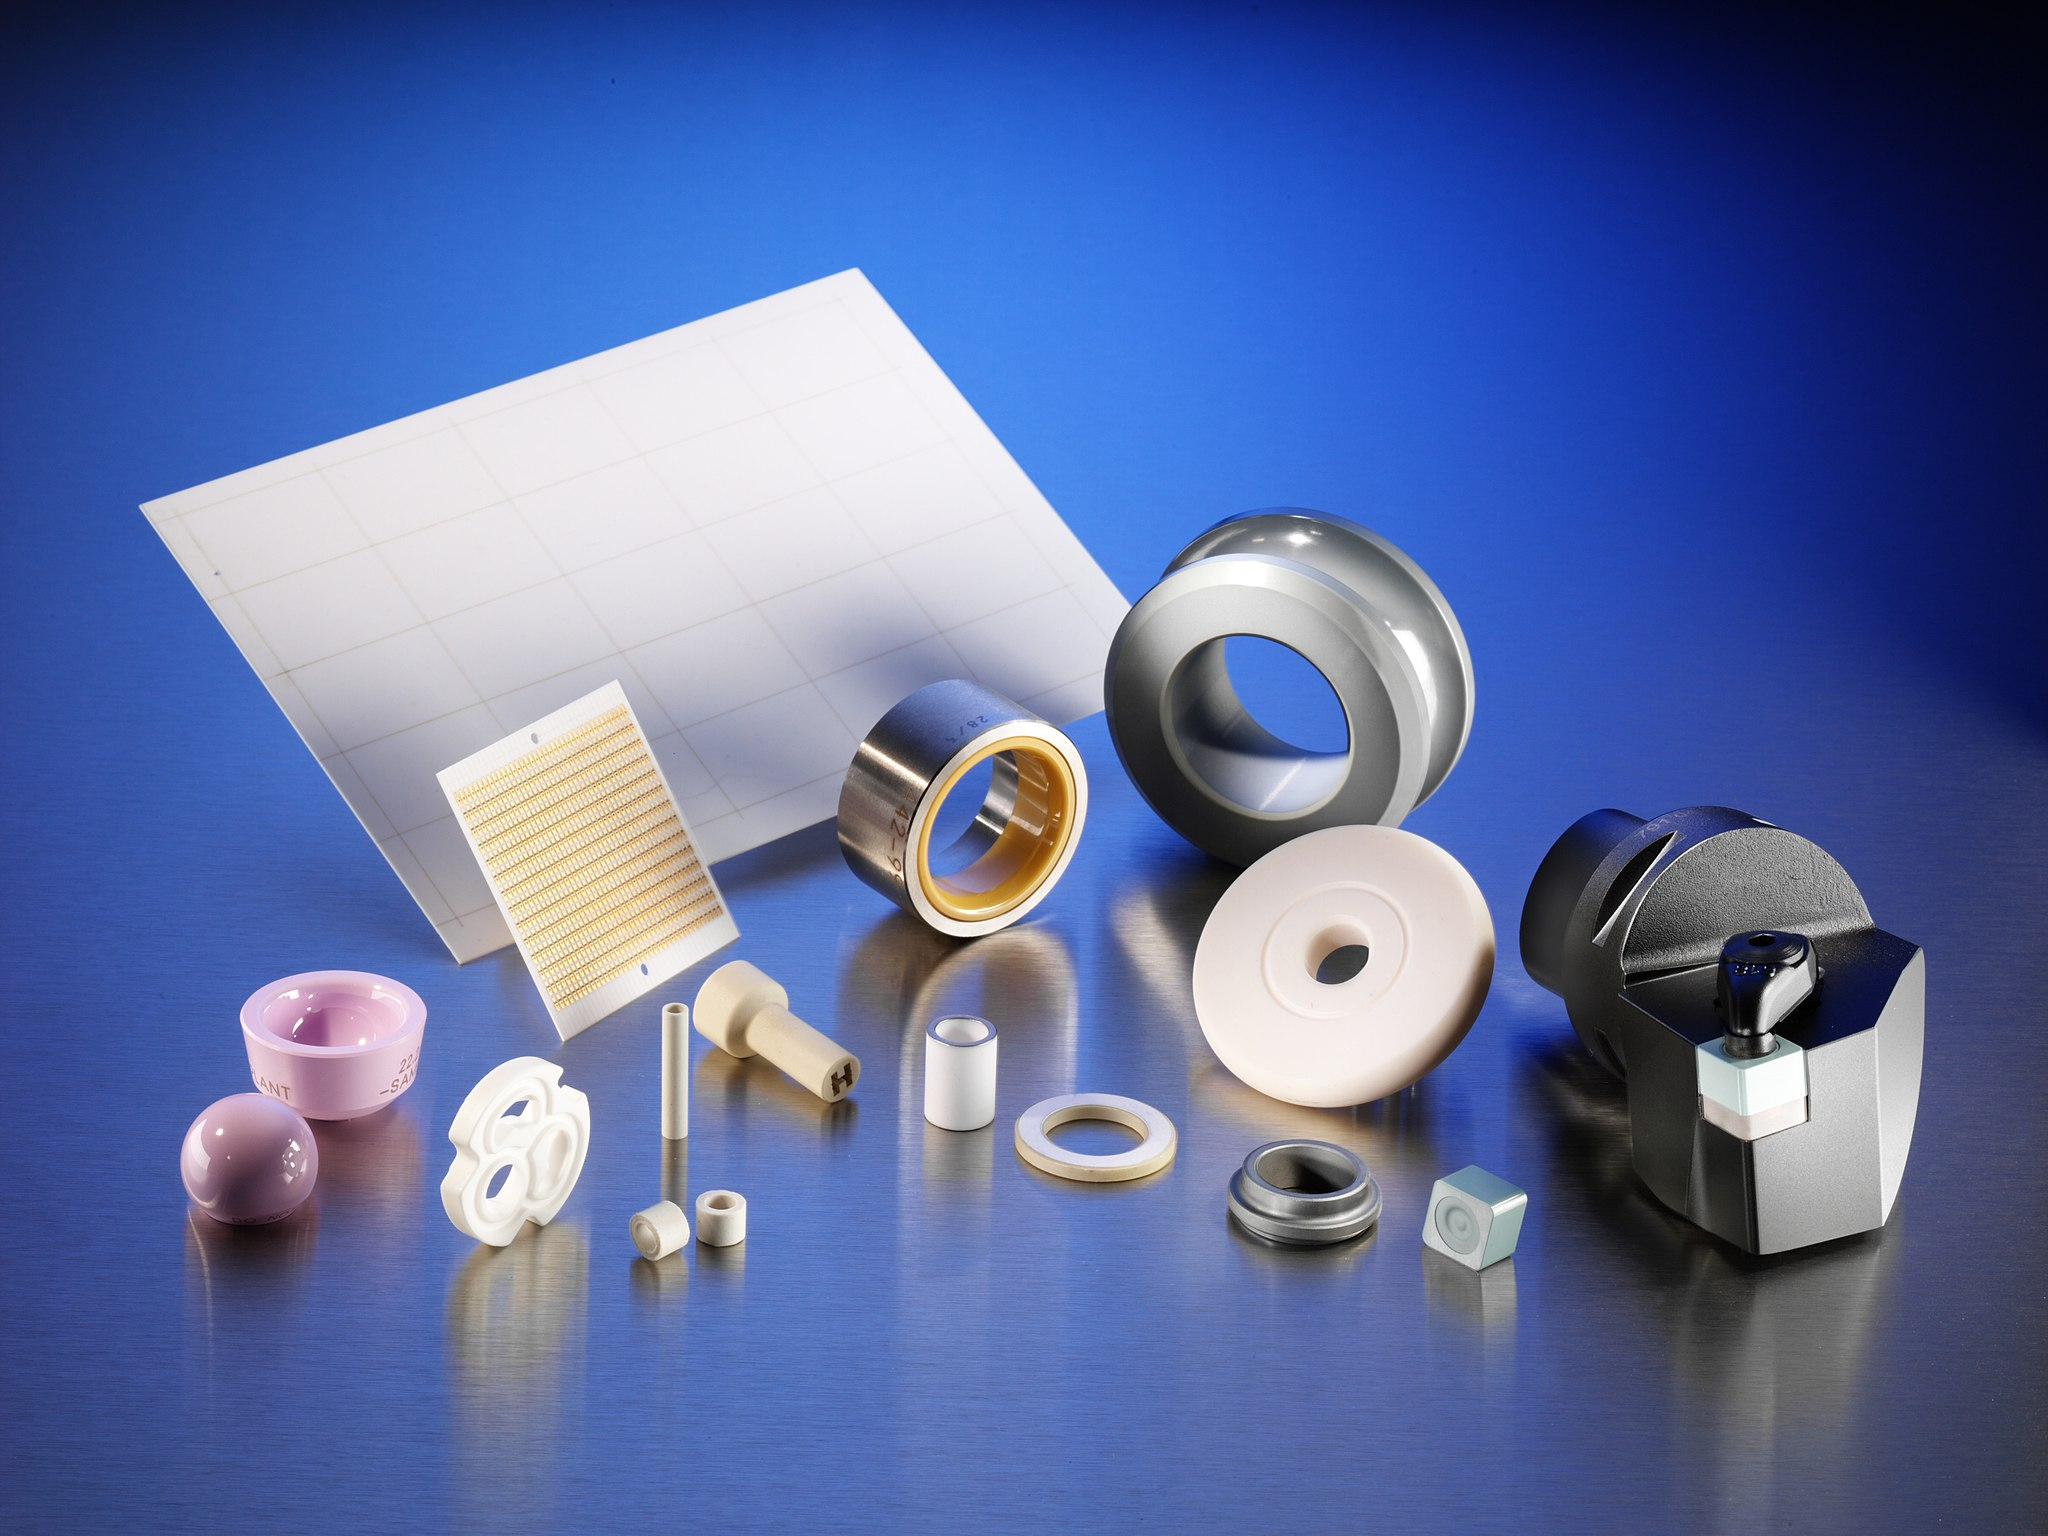 5 Areas of Opportunity for Advanced Ceramics Suppliers